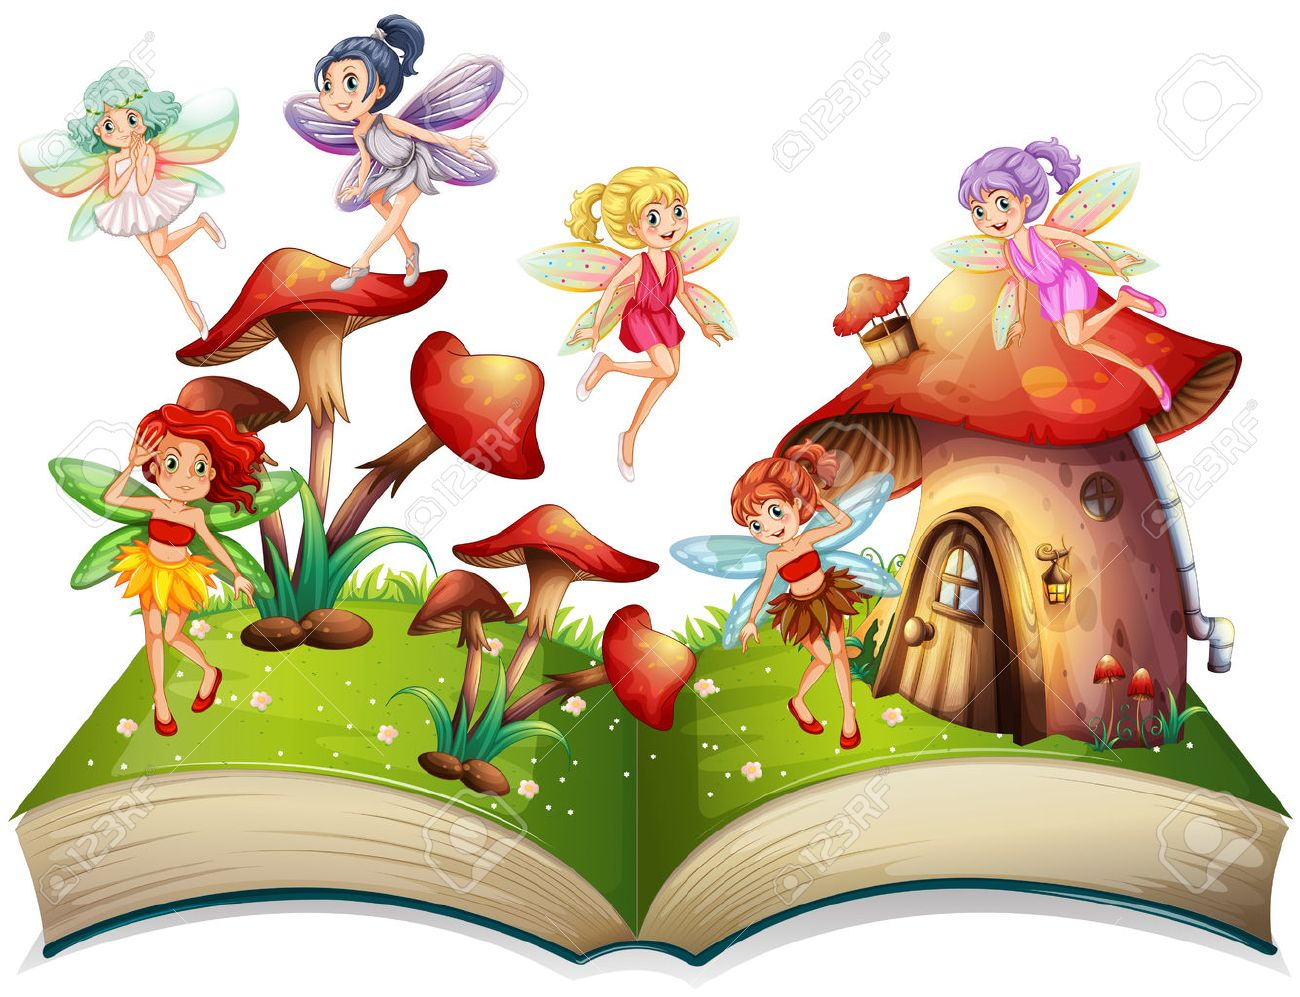 Fairies Flying Around The Mushroom House Illustration Royalty Free ...